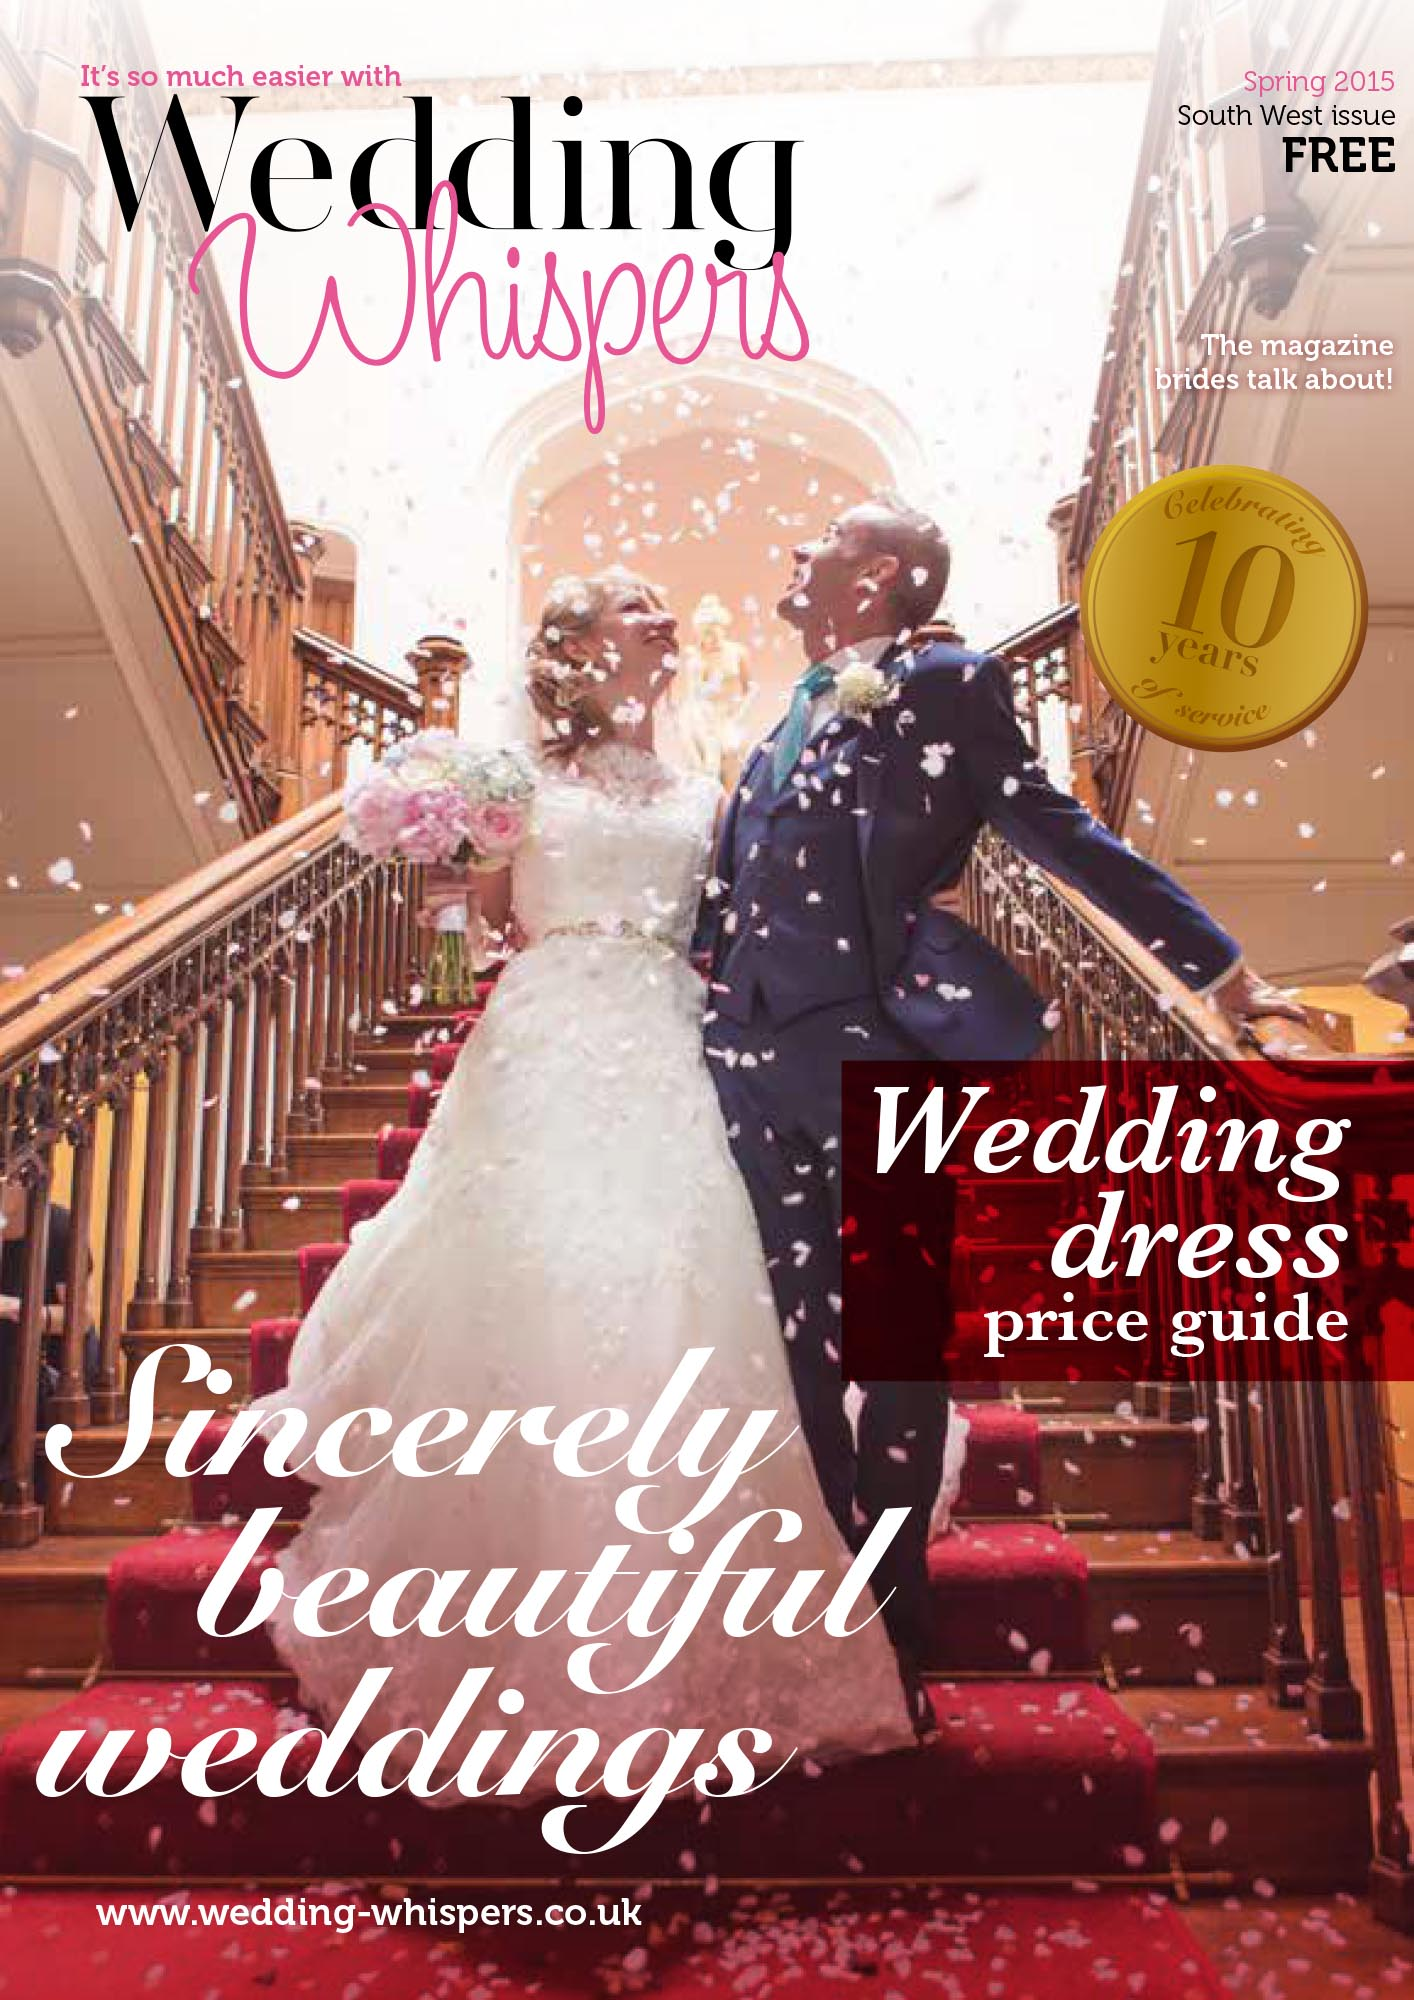 Front Cover of Wedding Whispers Magazine Spring 2015